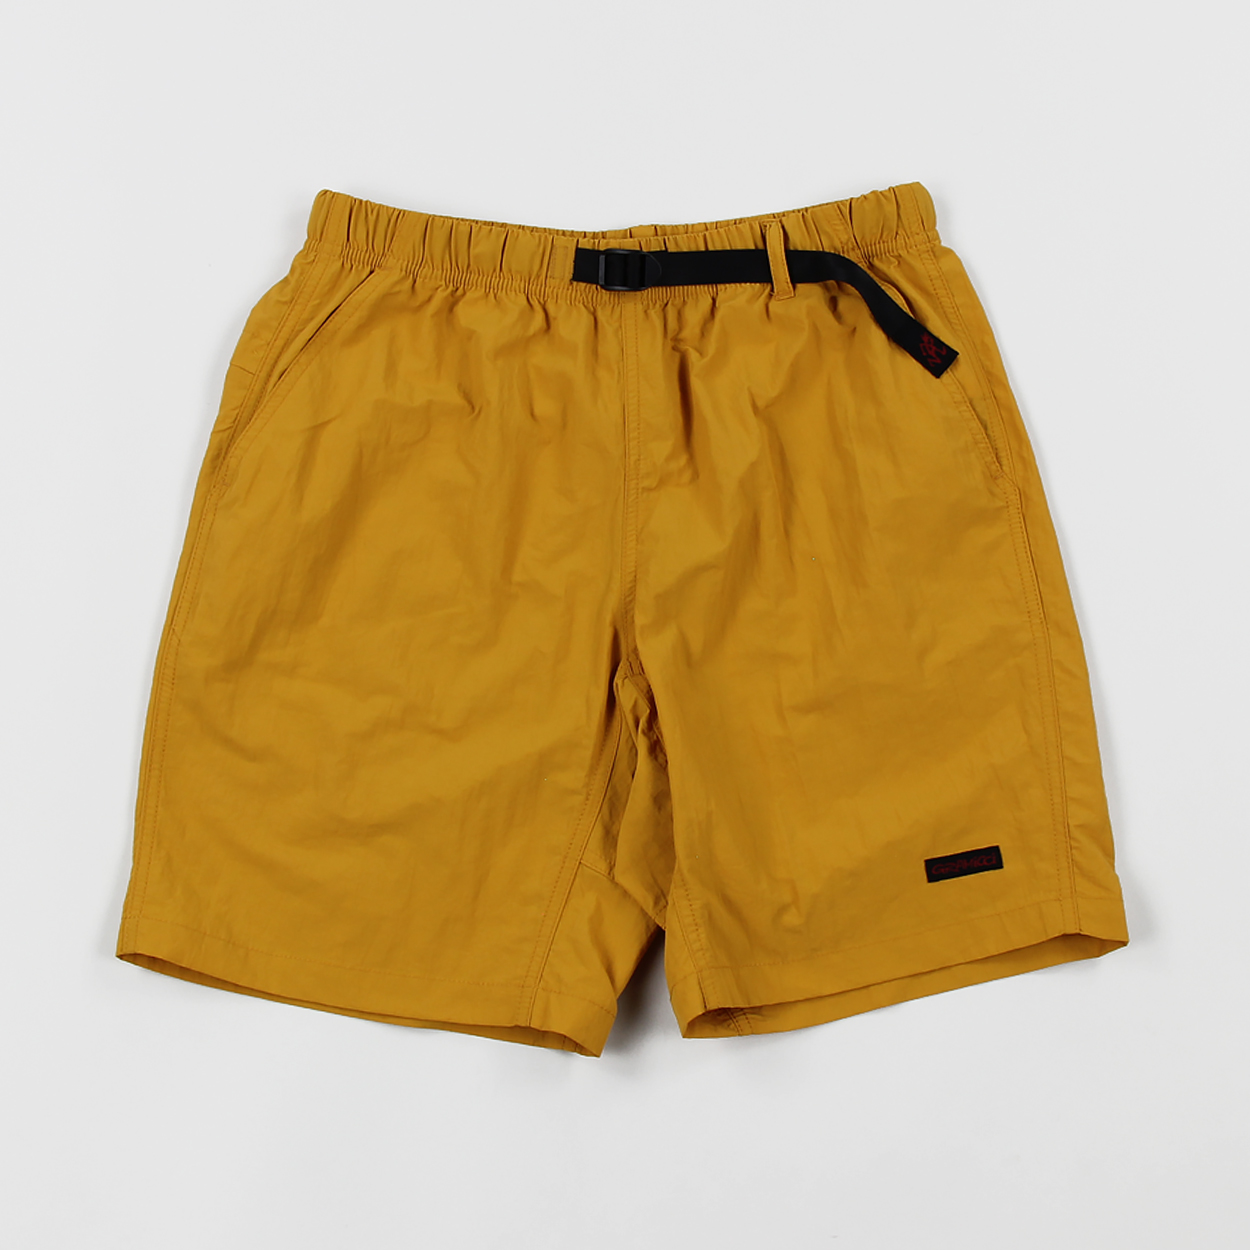 6189bfb1e4 Gramicci Mens Lightweight Shell Packable Shorts Mustard Yellow £65.00